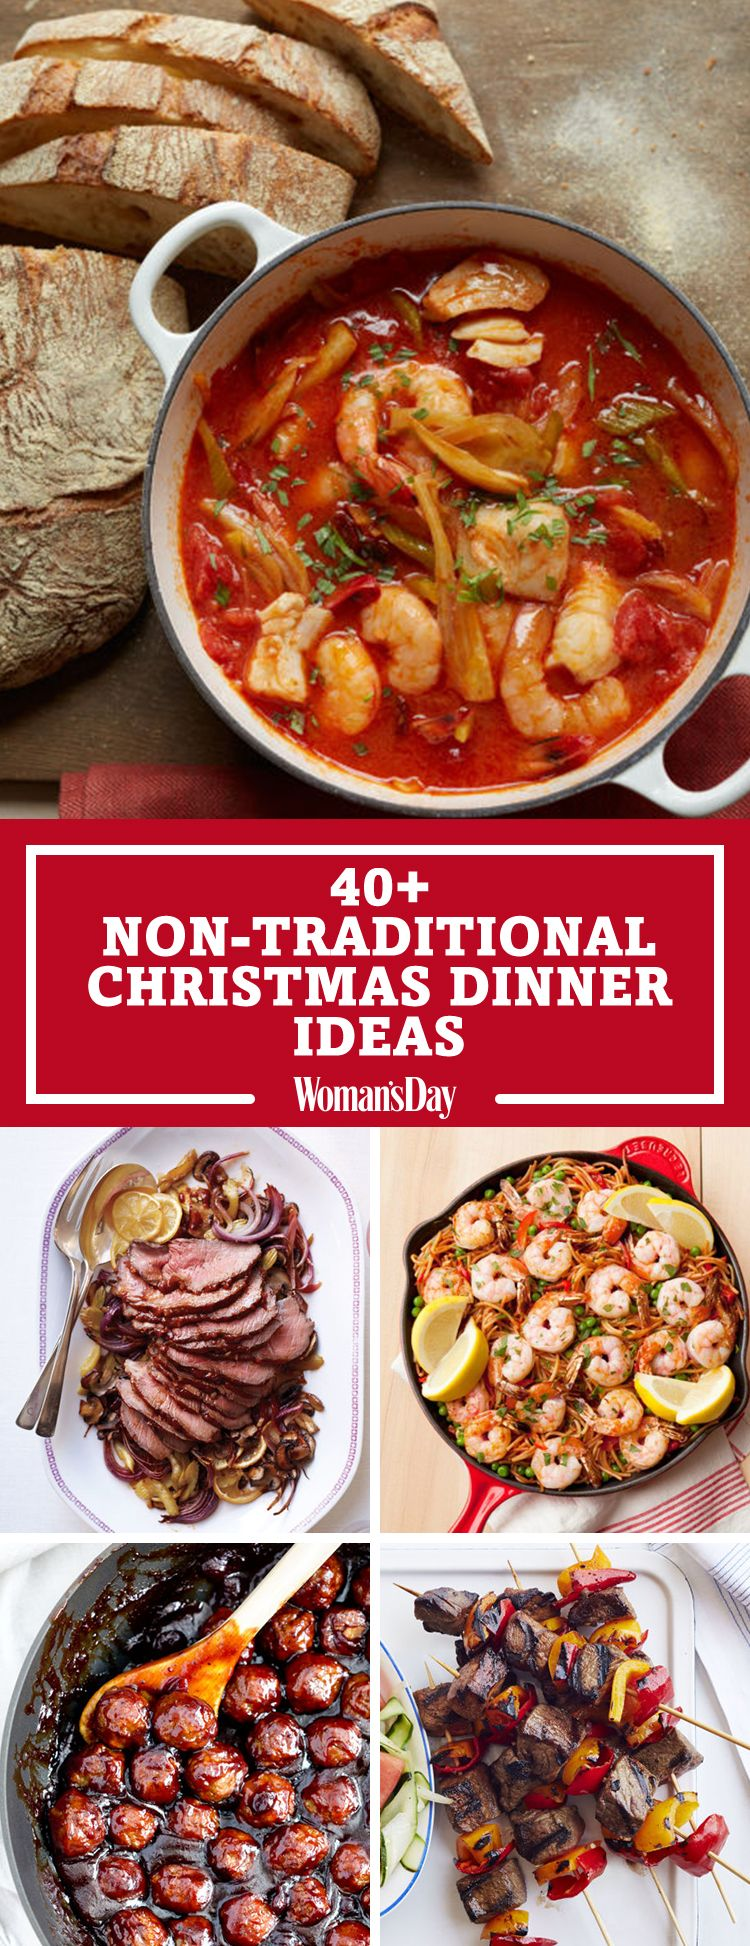 50+ christmas food ideas you need to add to your holiday menu | good